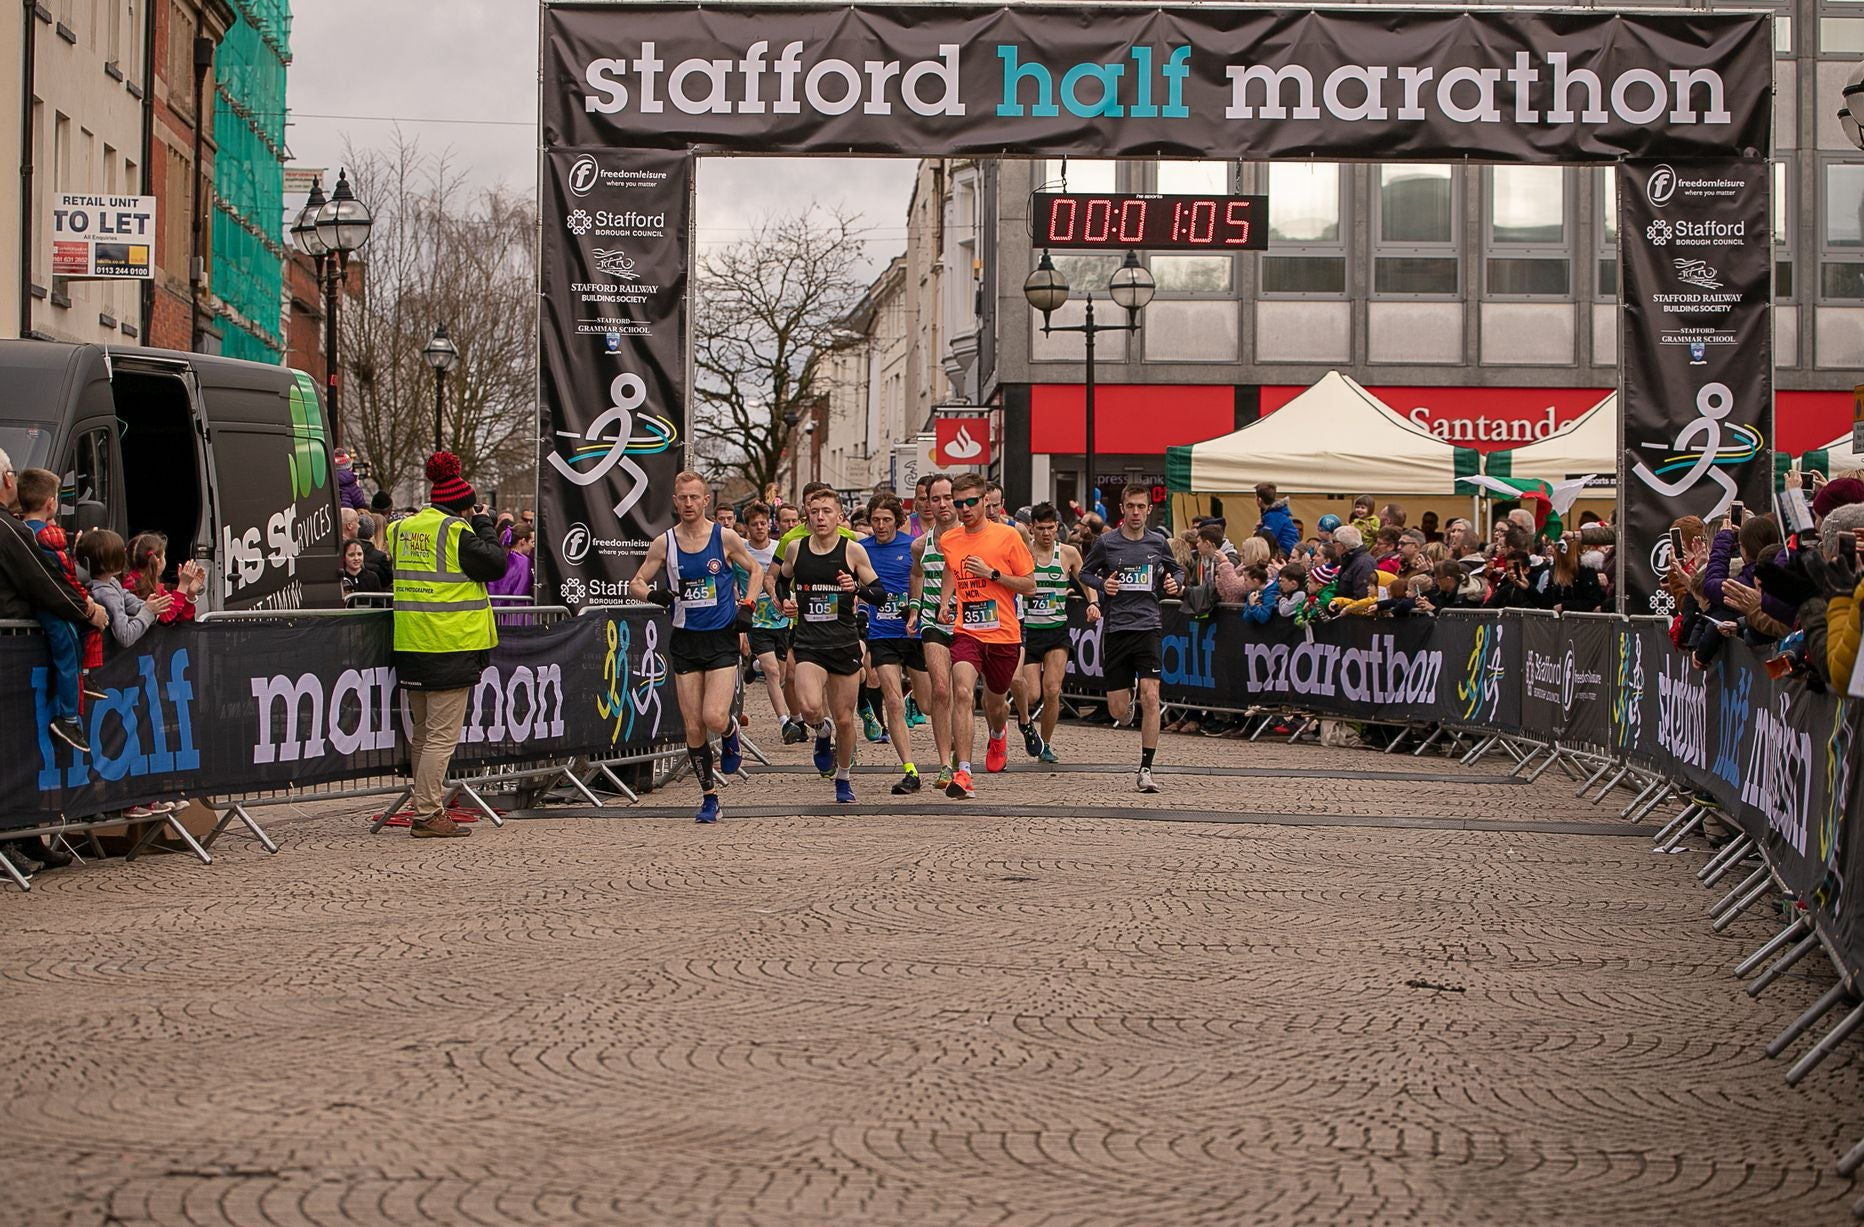 A personal best at the Stafford half marathon